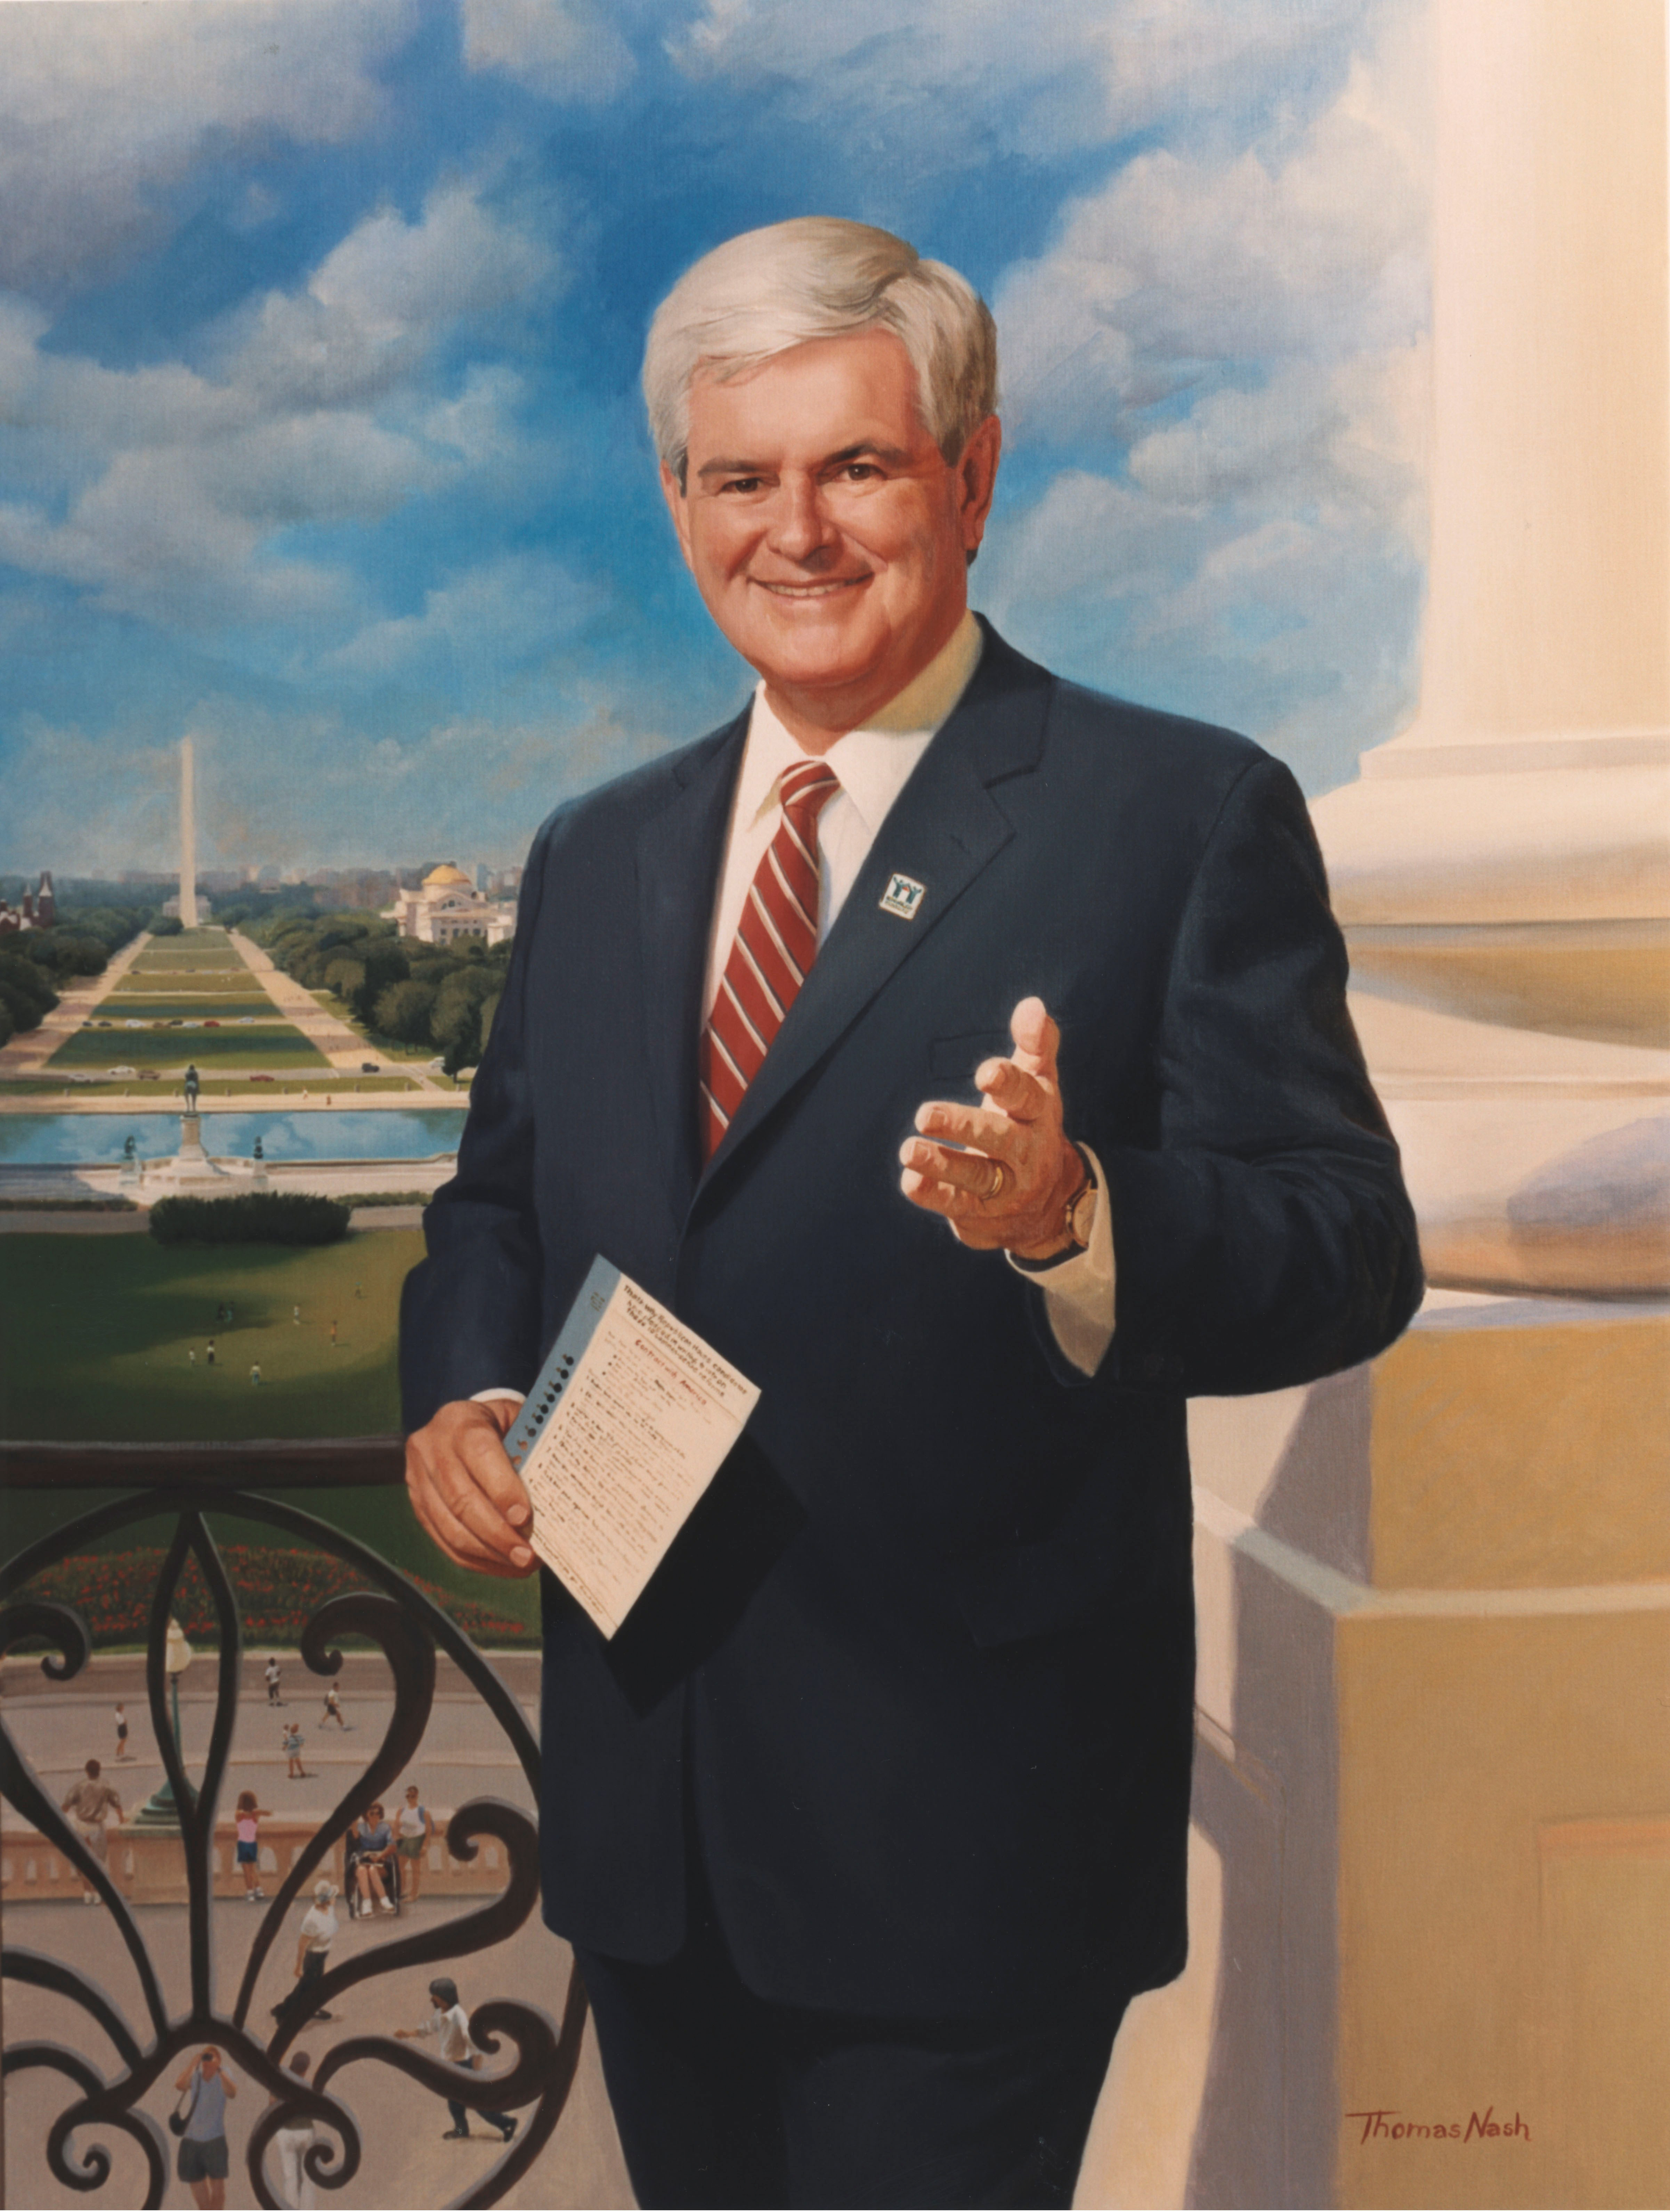 Gingrich's official portrait as Speaker